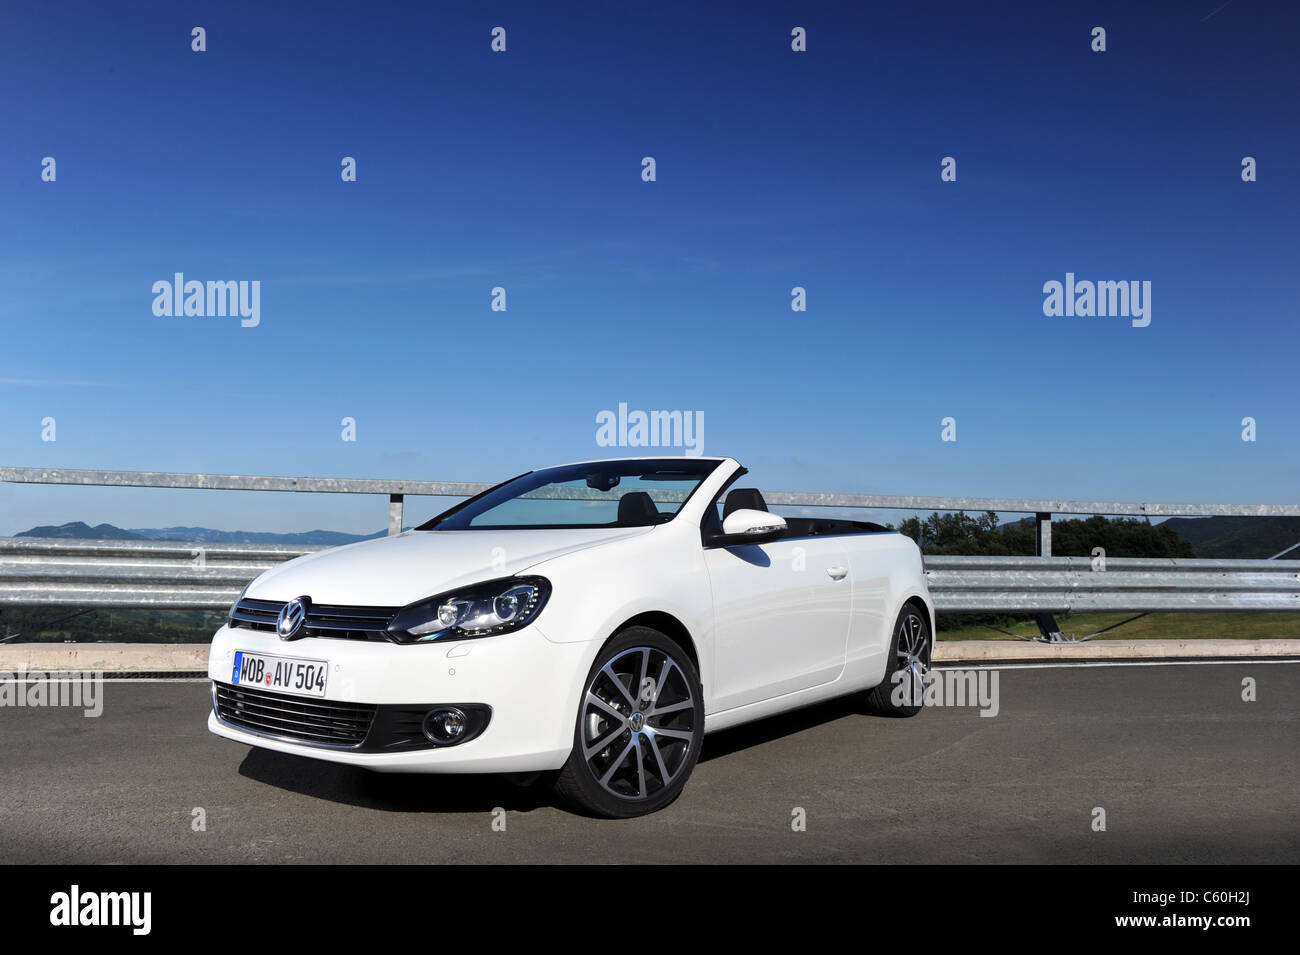 vw golf cabriolet stock photos vw golf cabriolet stock. Black Bedroom Furniture Sets. Home Design Ideas